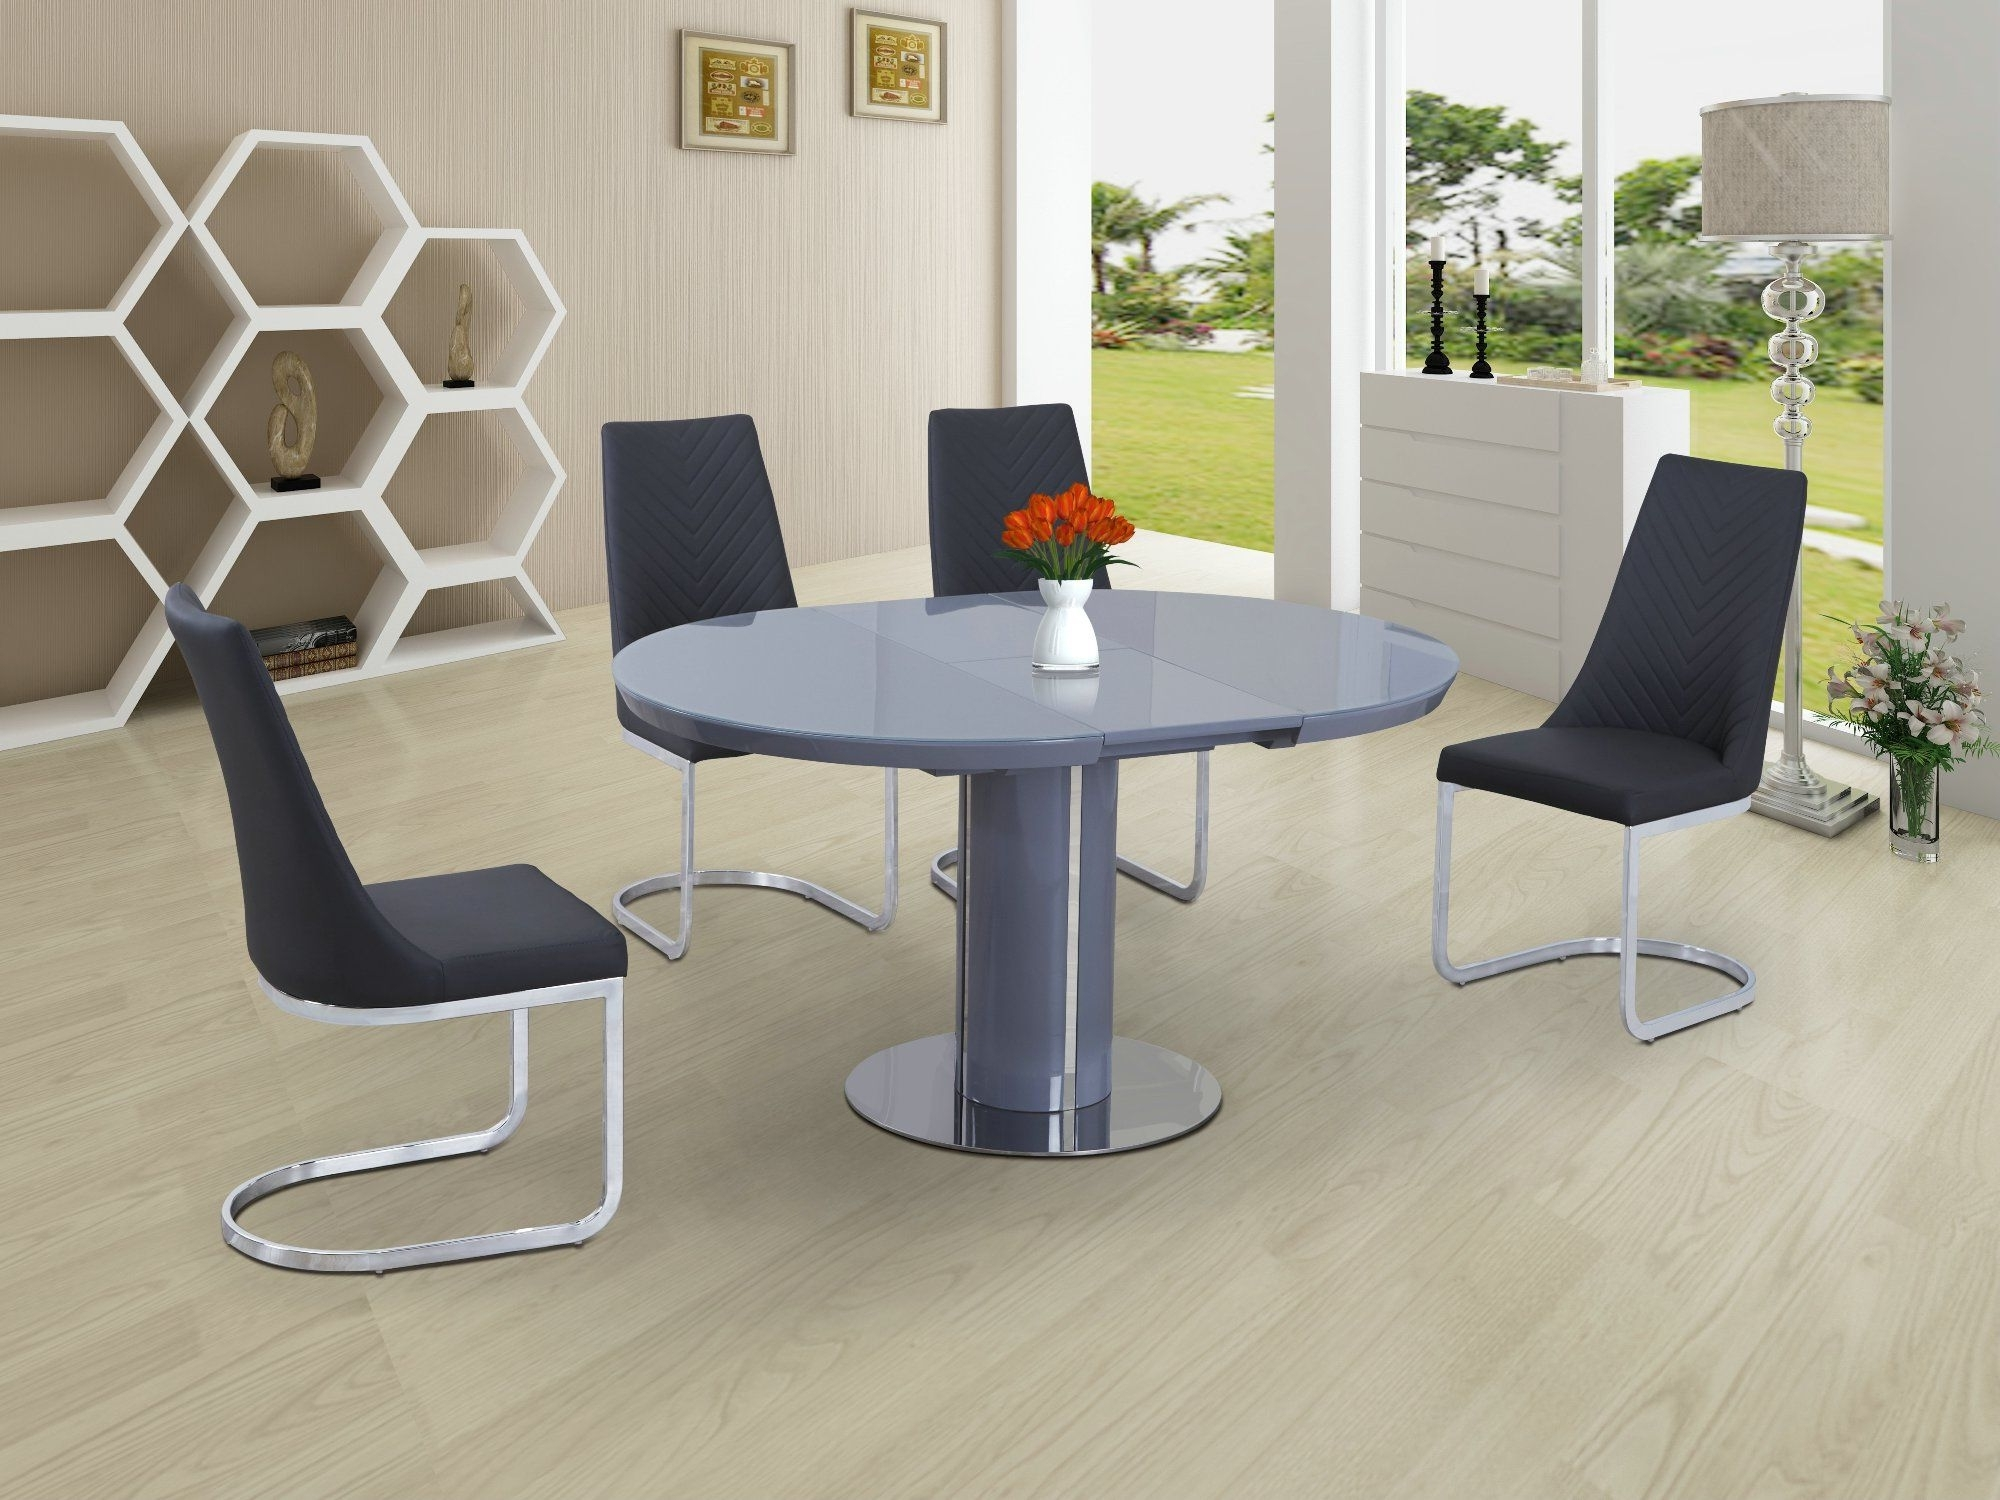 Eclipse Round Oval Gloss & Glass Extending 110 To 145 Cm Dining Throughout Most Recently Released Extending Round Dining Tables (View 11 of 25)